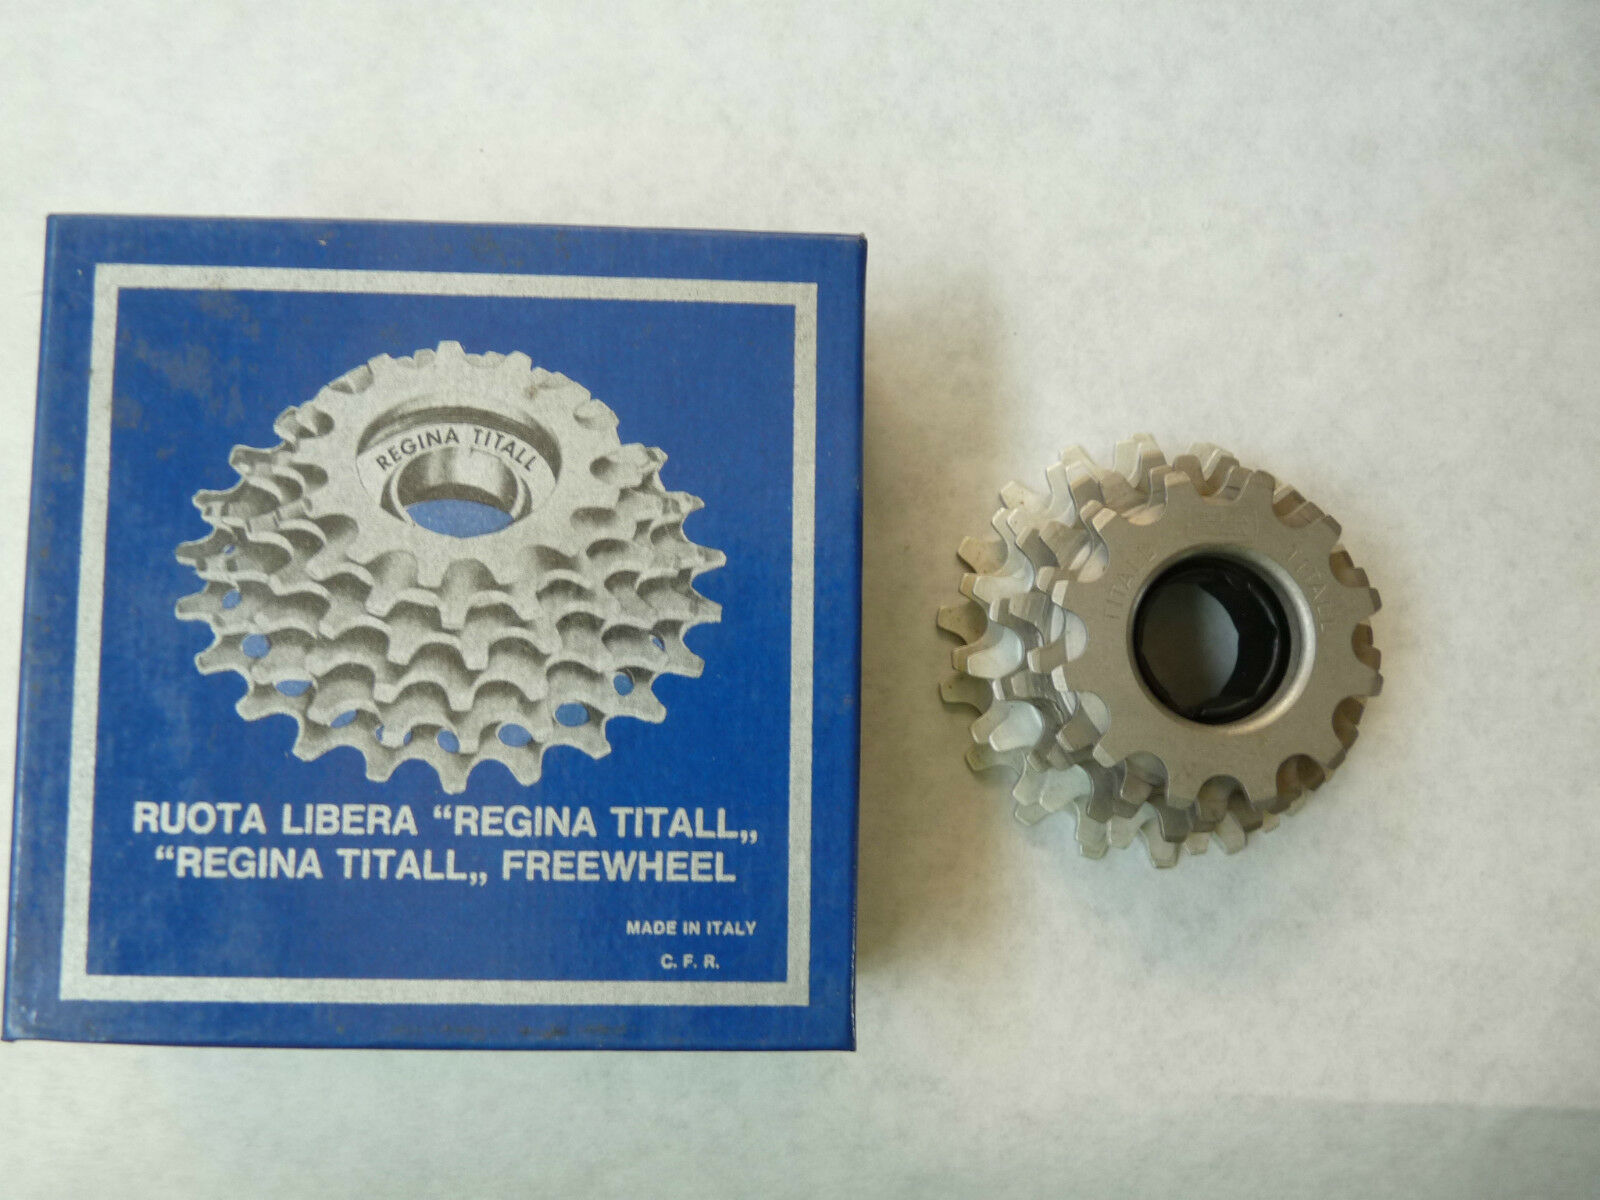 Regina Titanium Freewheel 7 Speed 12-18 ISO Vintage Road Bike 227 grams NOS